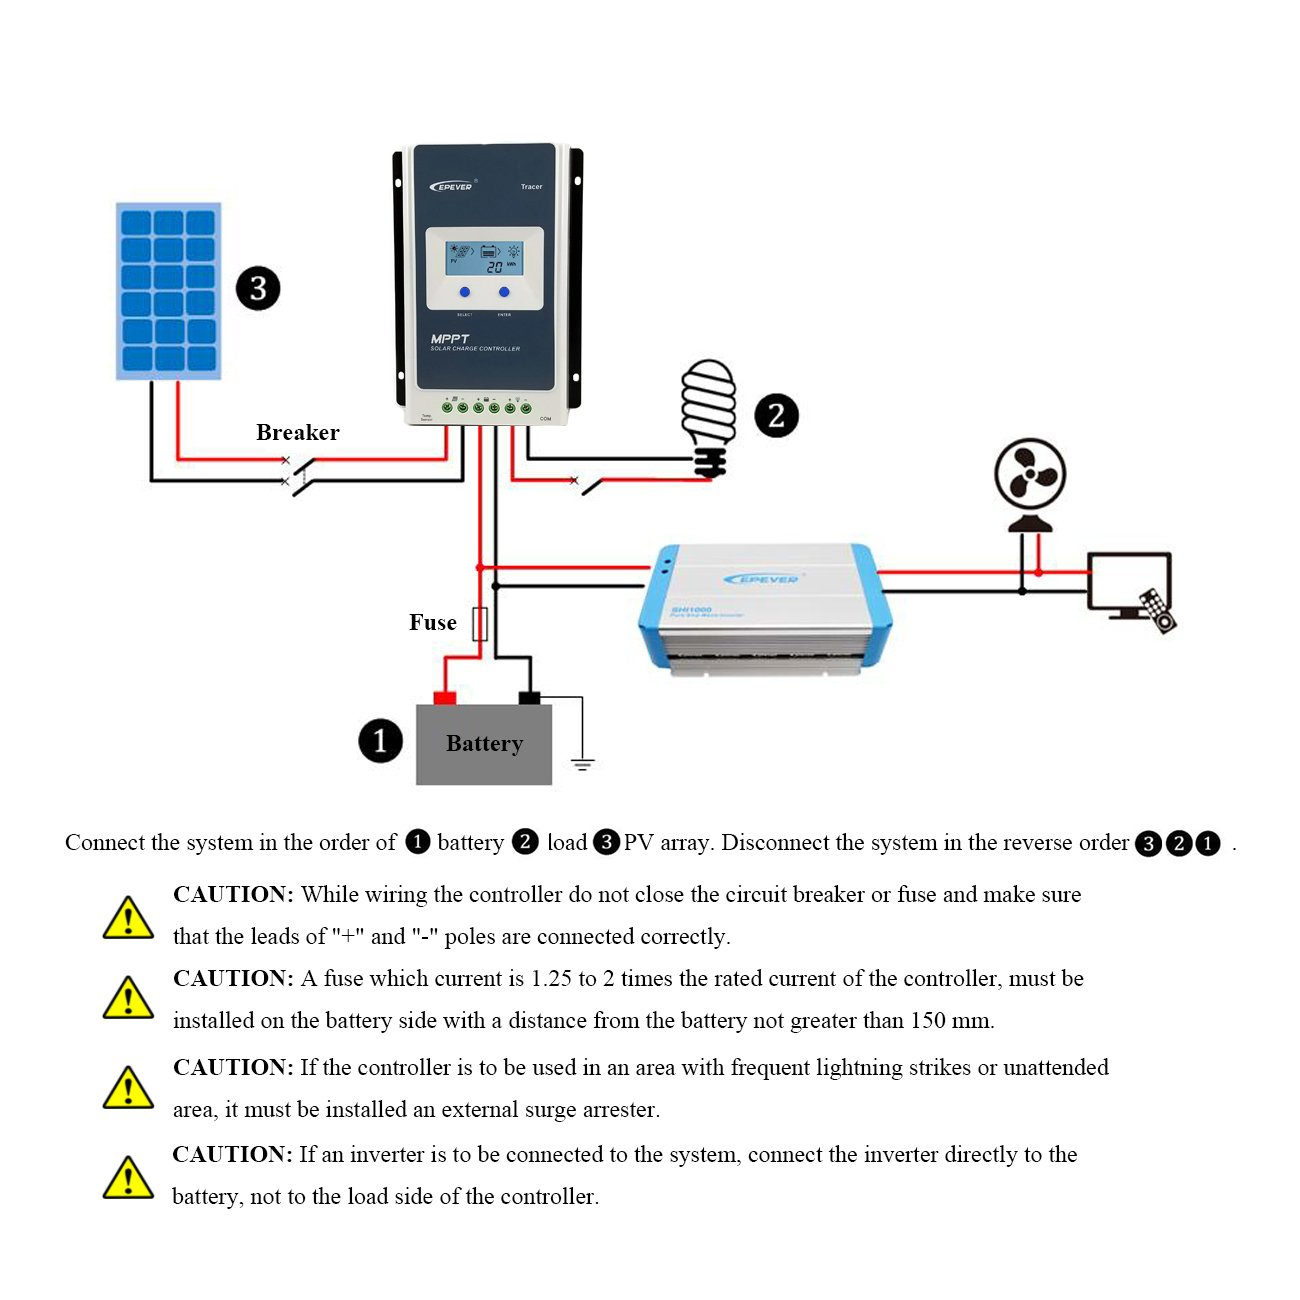 EPEVER MPPT Solar Charge Controller Tracer AN Series 10A/20A/30A/40A with  12V/24V DC Automatically Identifying System Voltage(10A): Amazon.co.uk:  Garden & ...